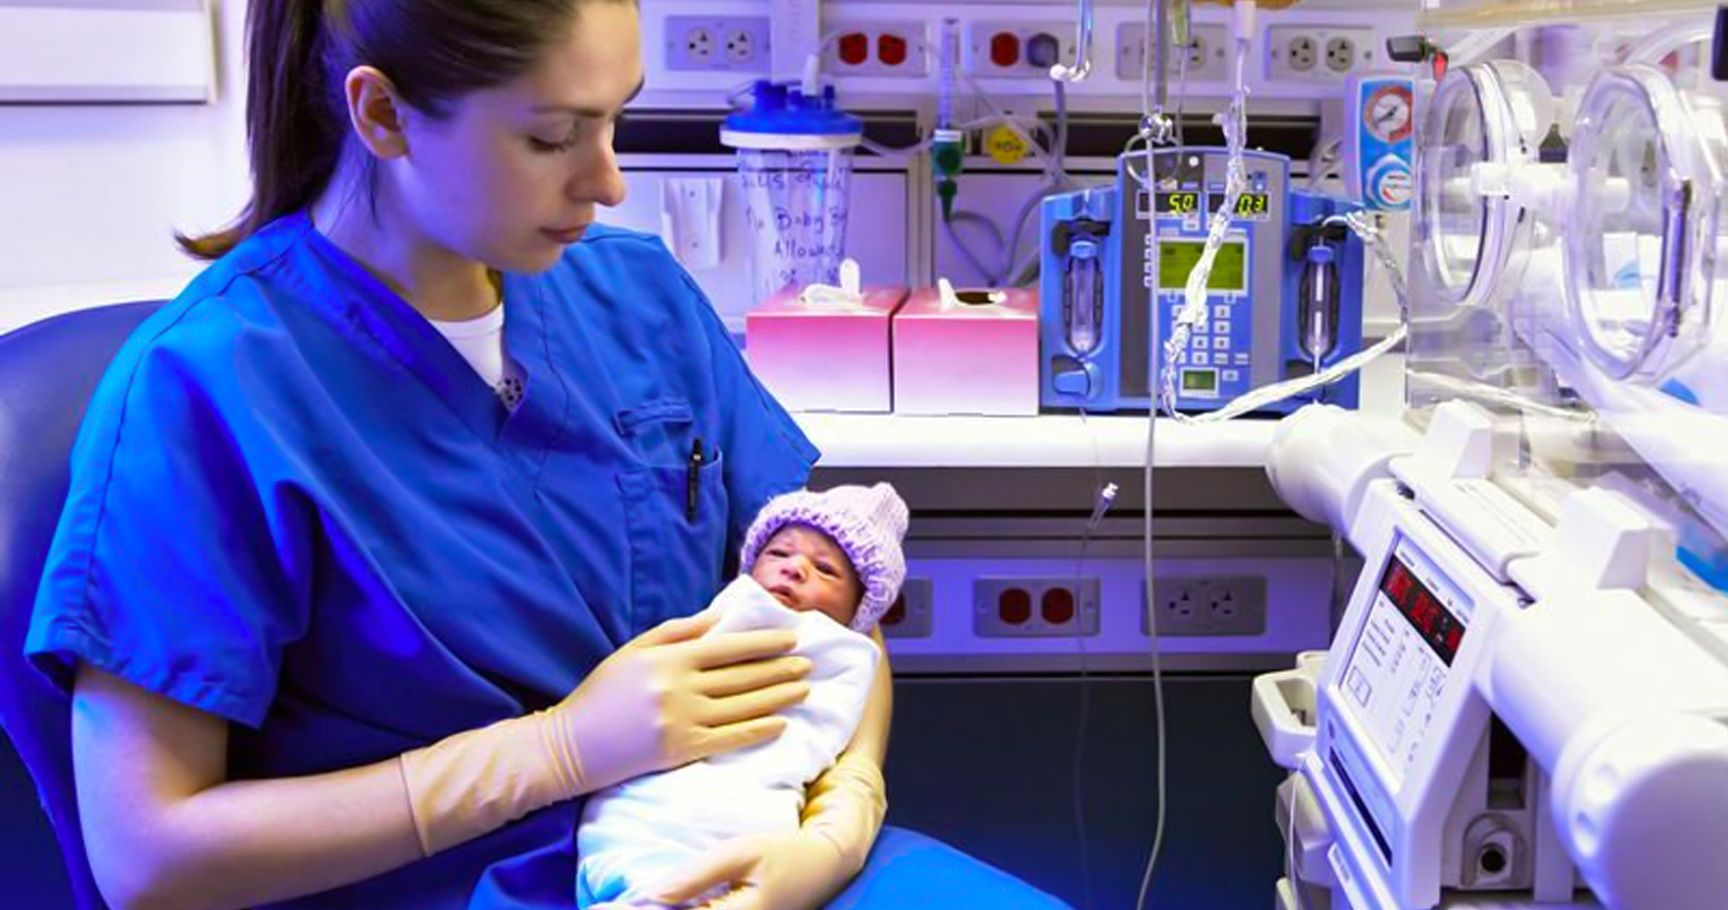 According To NICU Nurses: 20 Stories About Working The Unit